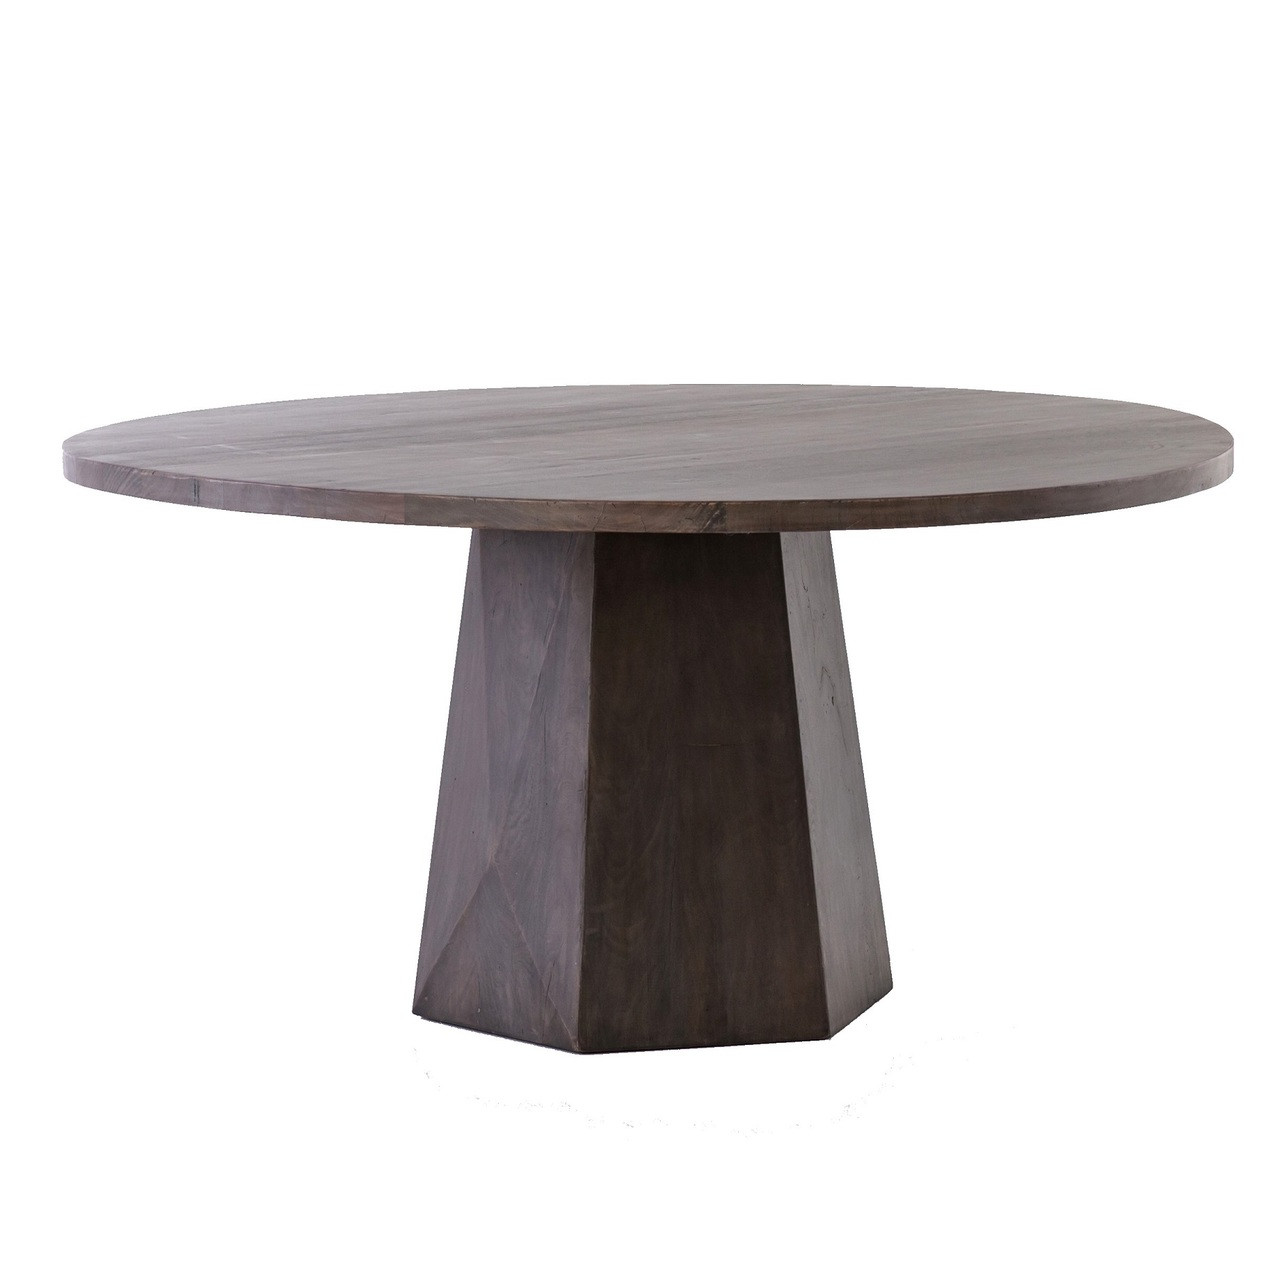 Kemper Reclaimed Wood Coal Grey Round Pedestal Dining Table 60